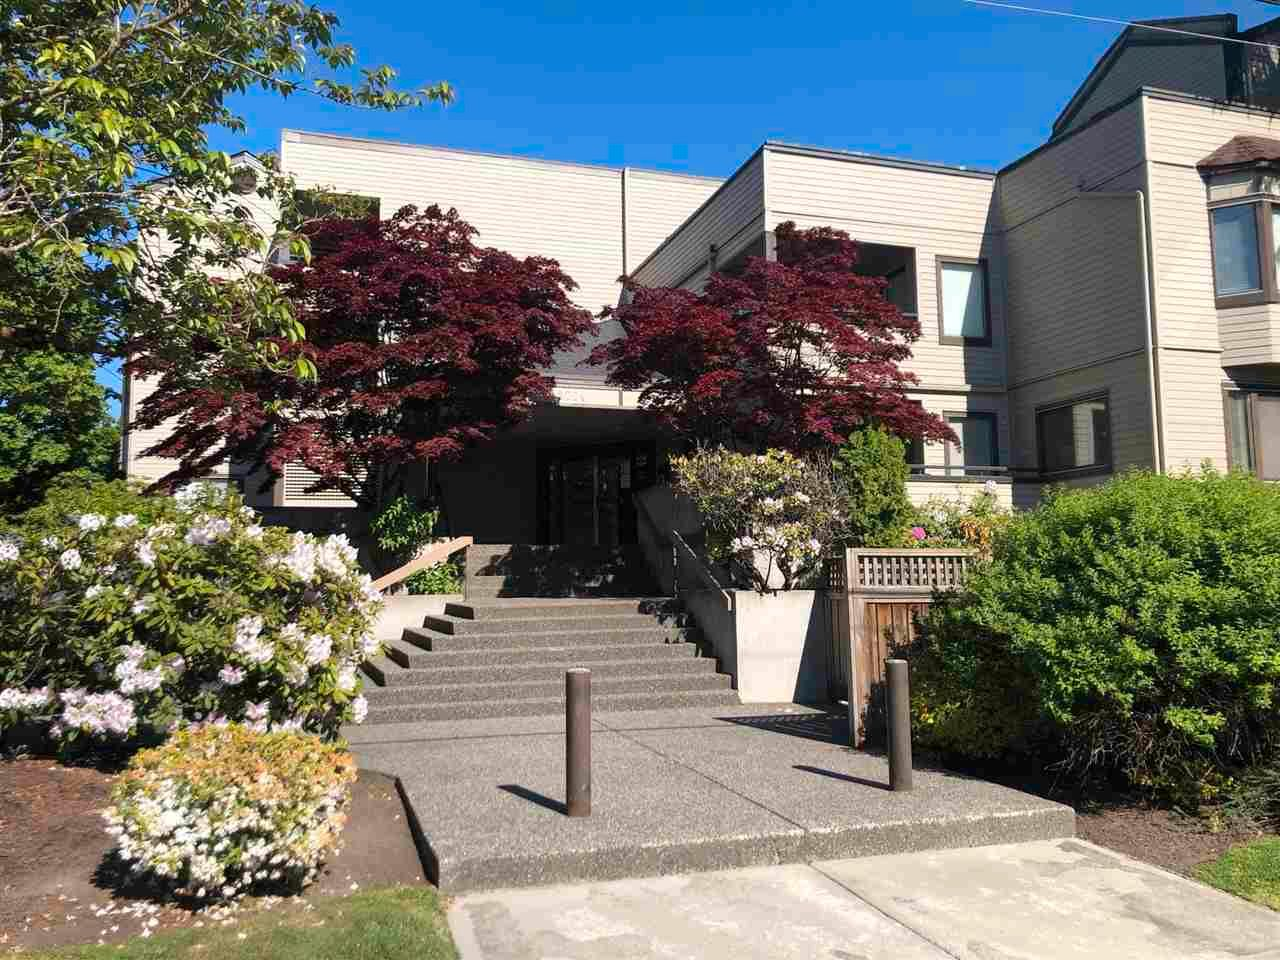 """Main Photo: 111 5224 204 Street in Langley: Langley City Condo for sale in """"Southwynde"""" : MLS®# R2584127"""